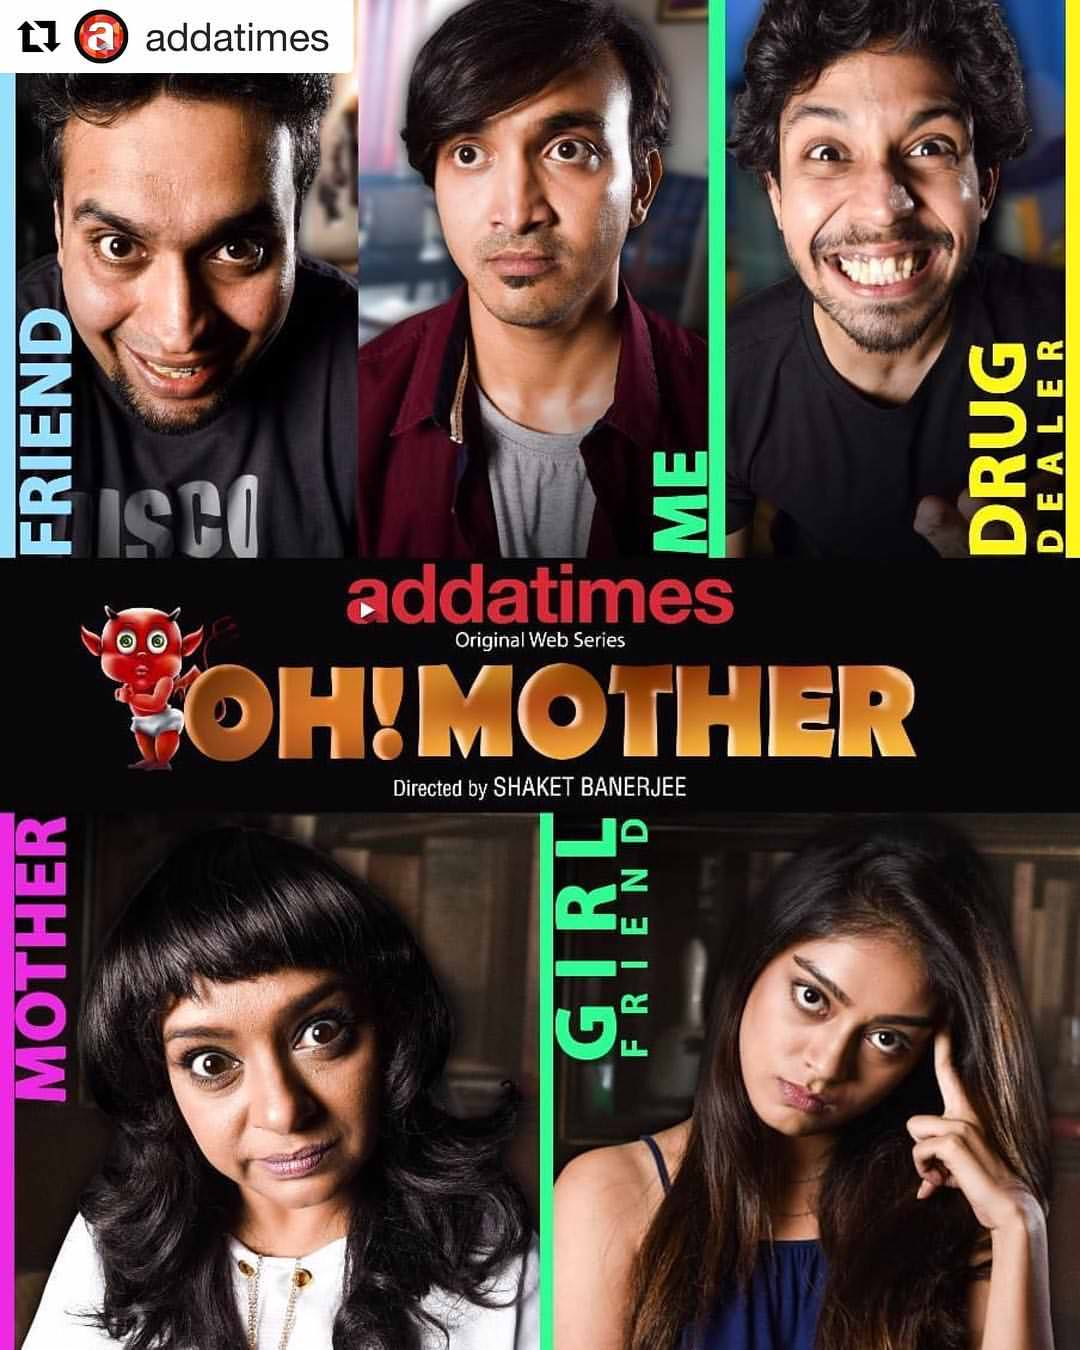 We are getting very good response for OH! MOTHER: Rajiv